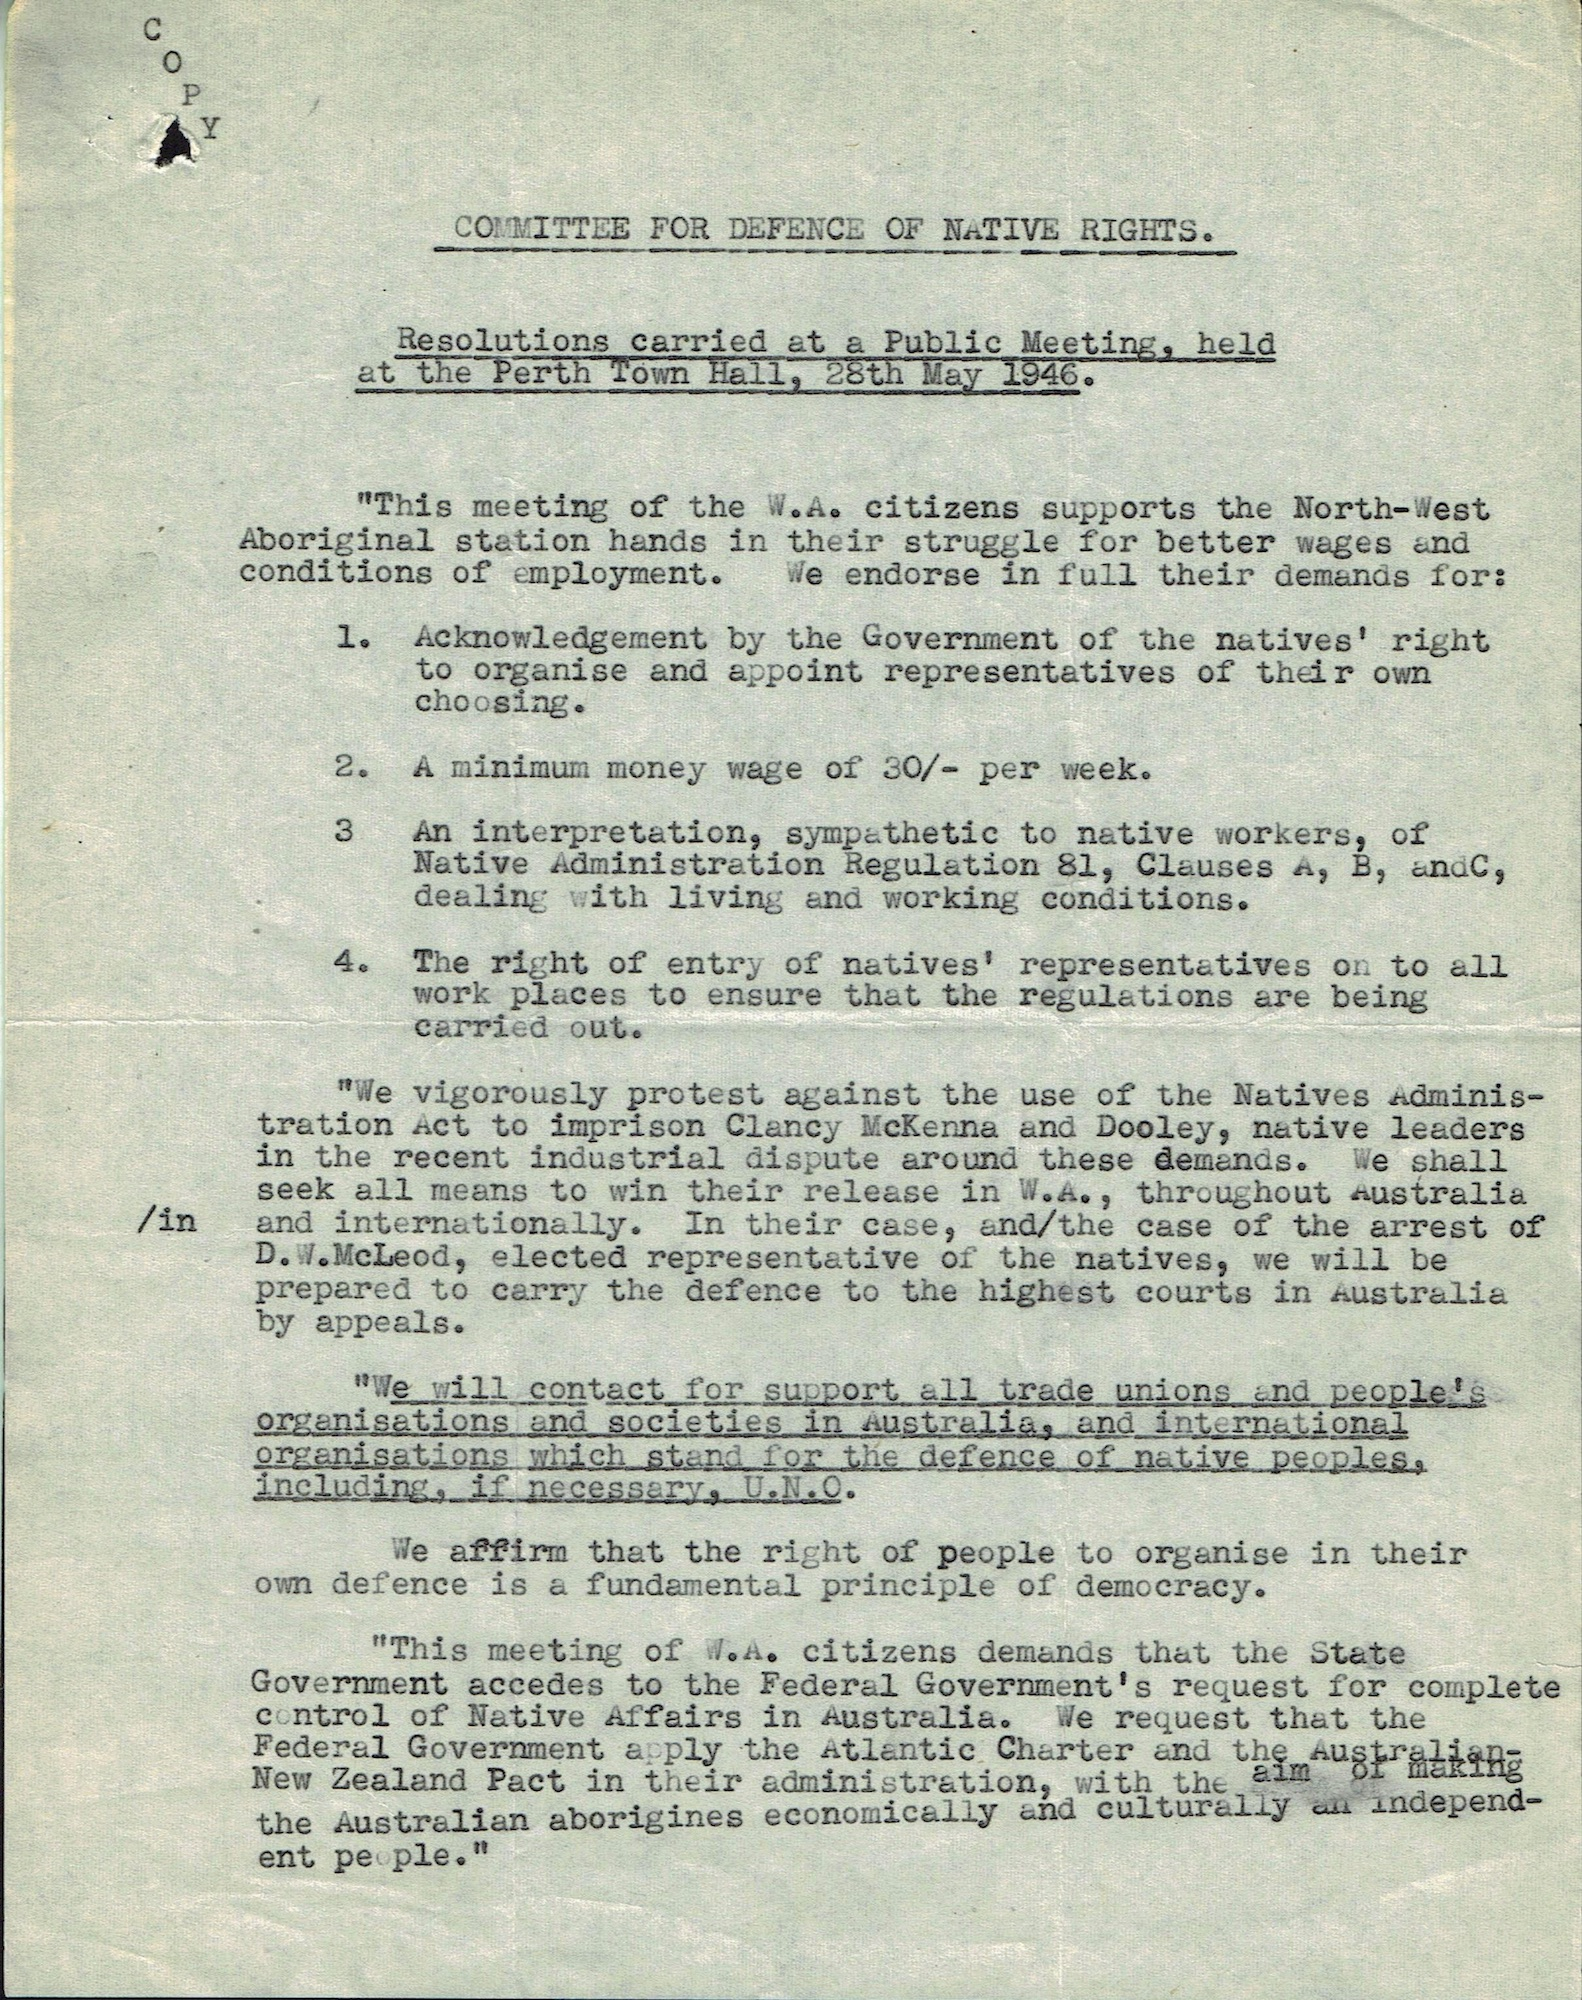 Committee for Defence of Native Rights, 28 May 1946, Resolutions of a Meeting